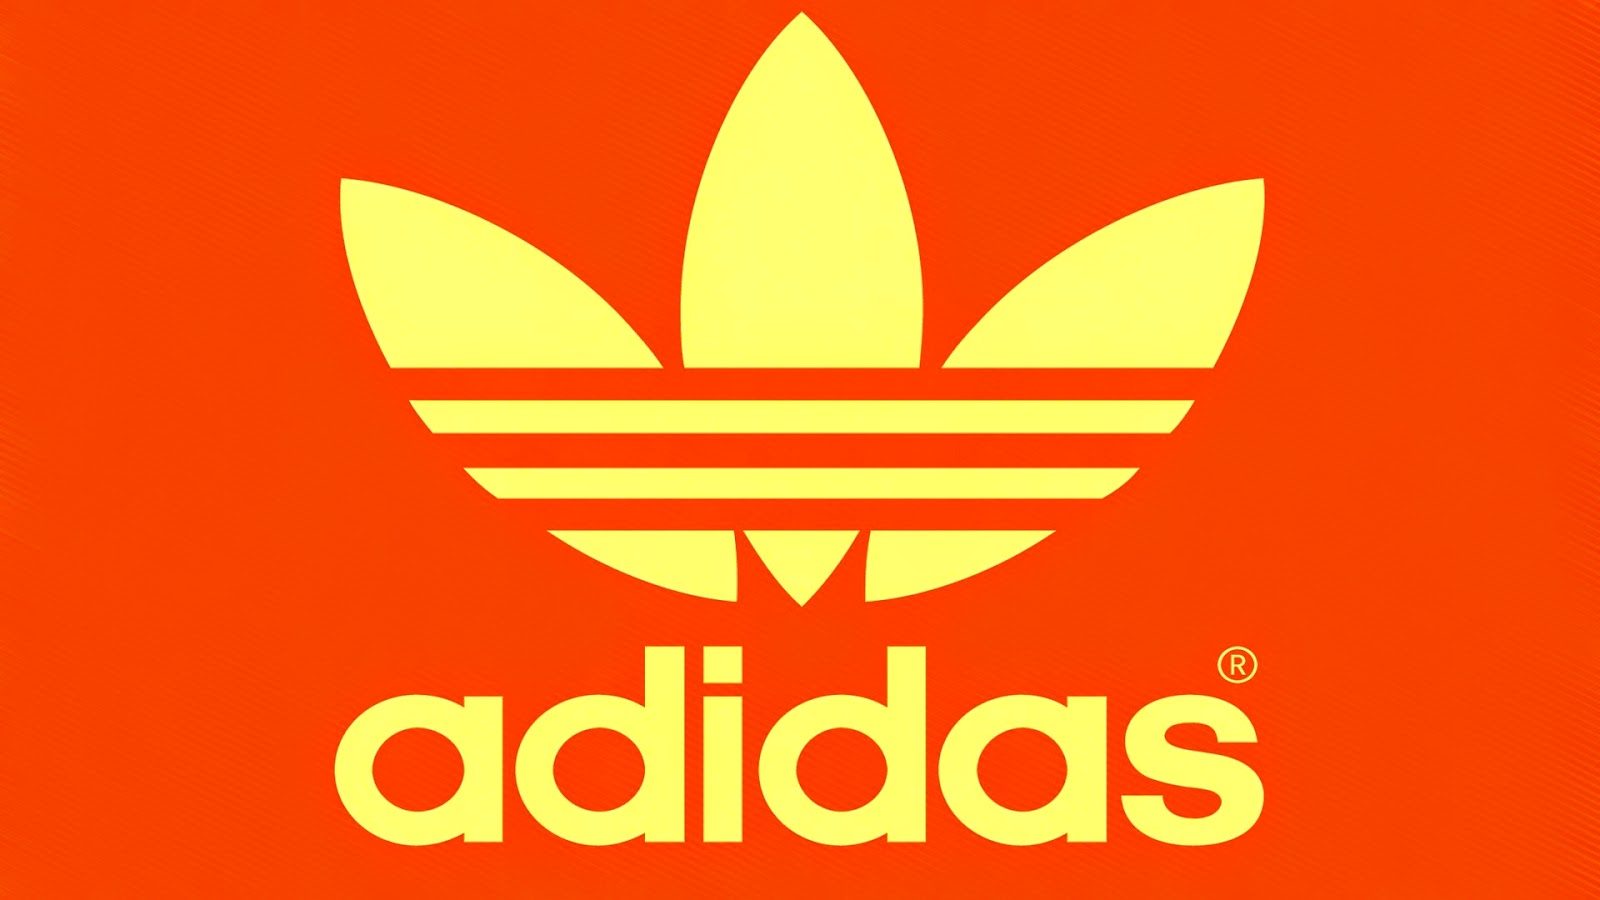 images for adidas logo vector fashion and style tips